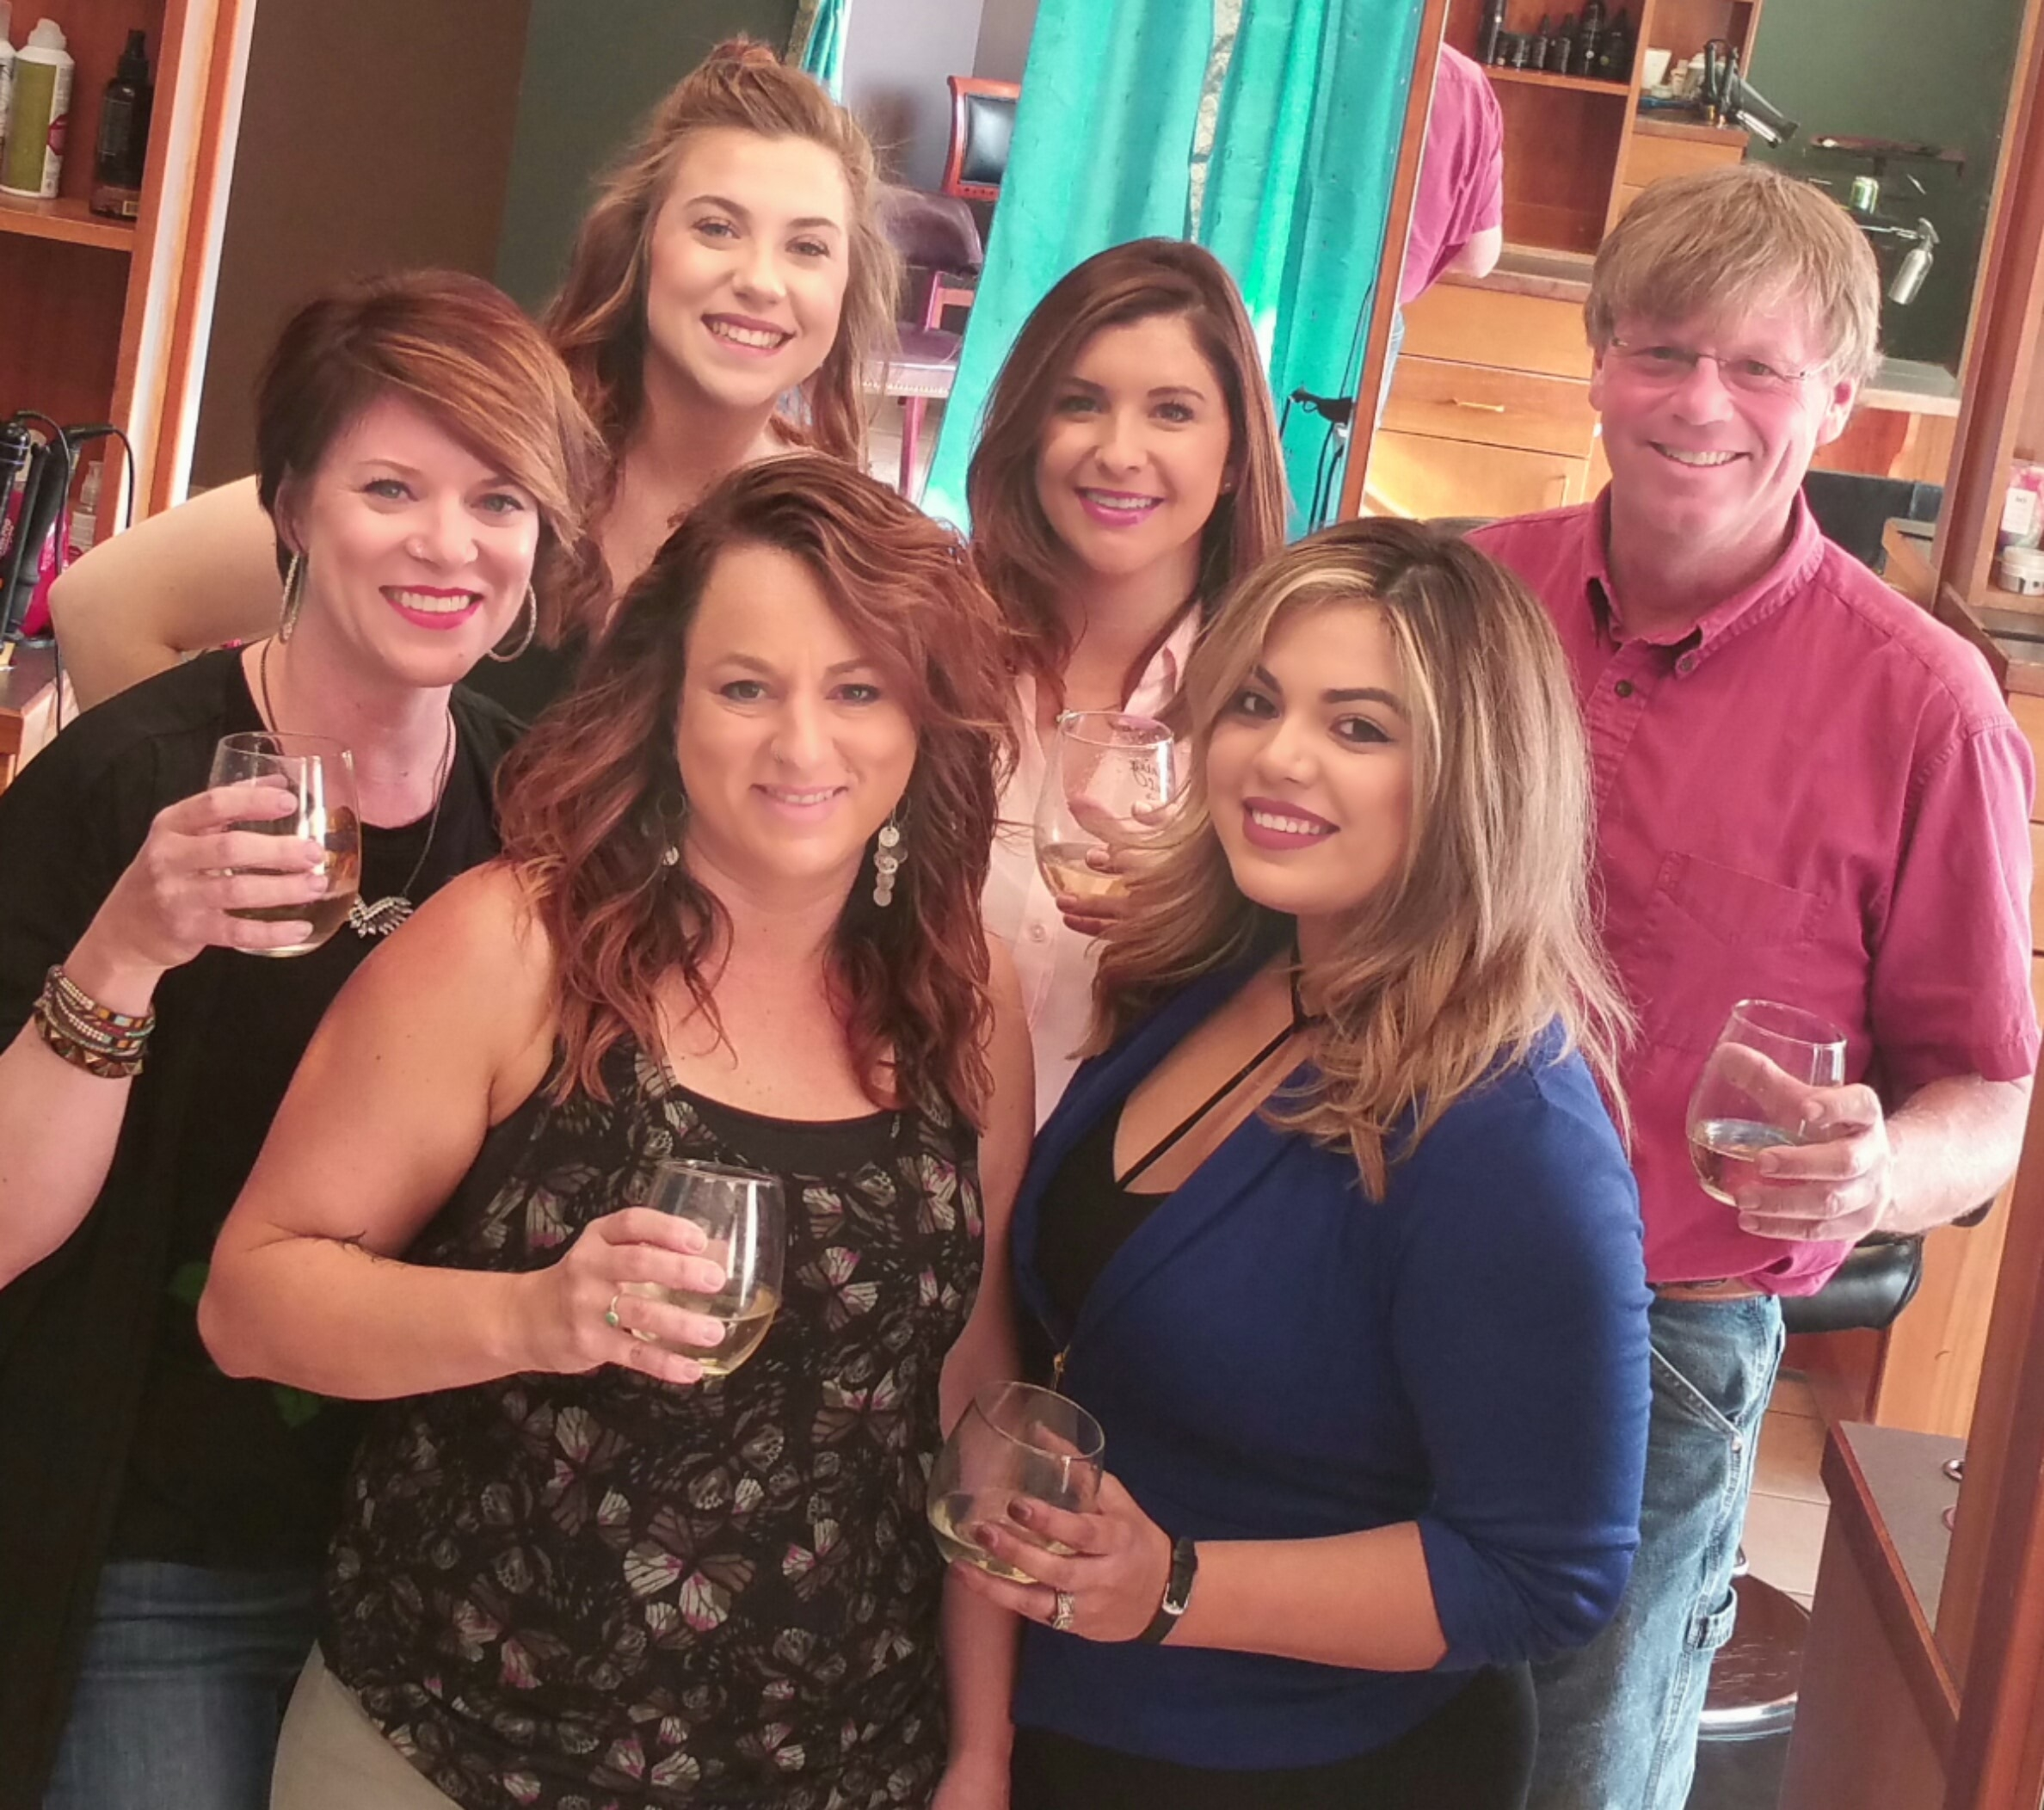 Most of the team from Mangos in Ellensburg, Washington: Sarah Rochester, Jacqui King, Keith Riexinger, Stephanie Castillo, Kim Davis and Martha Robles.